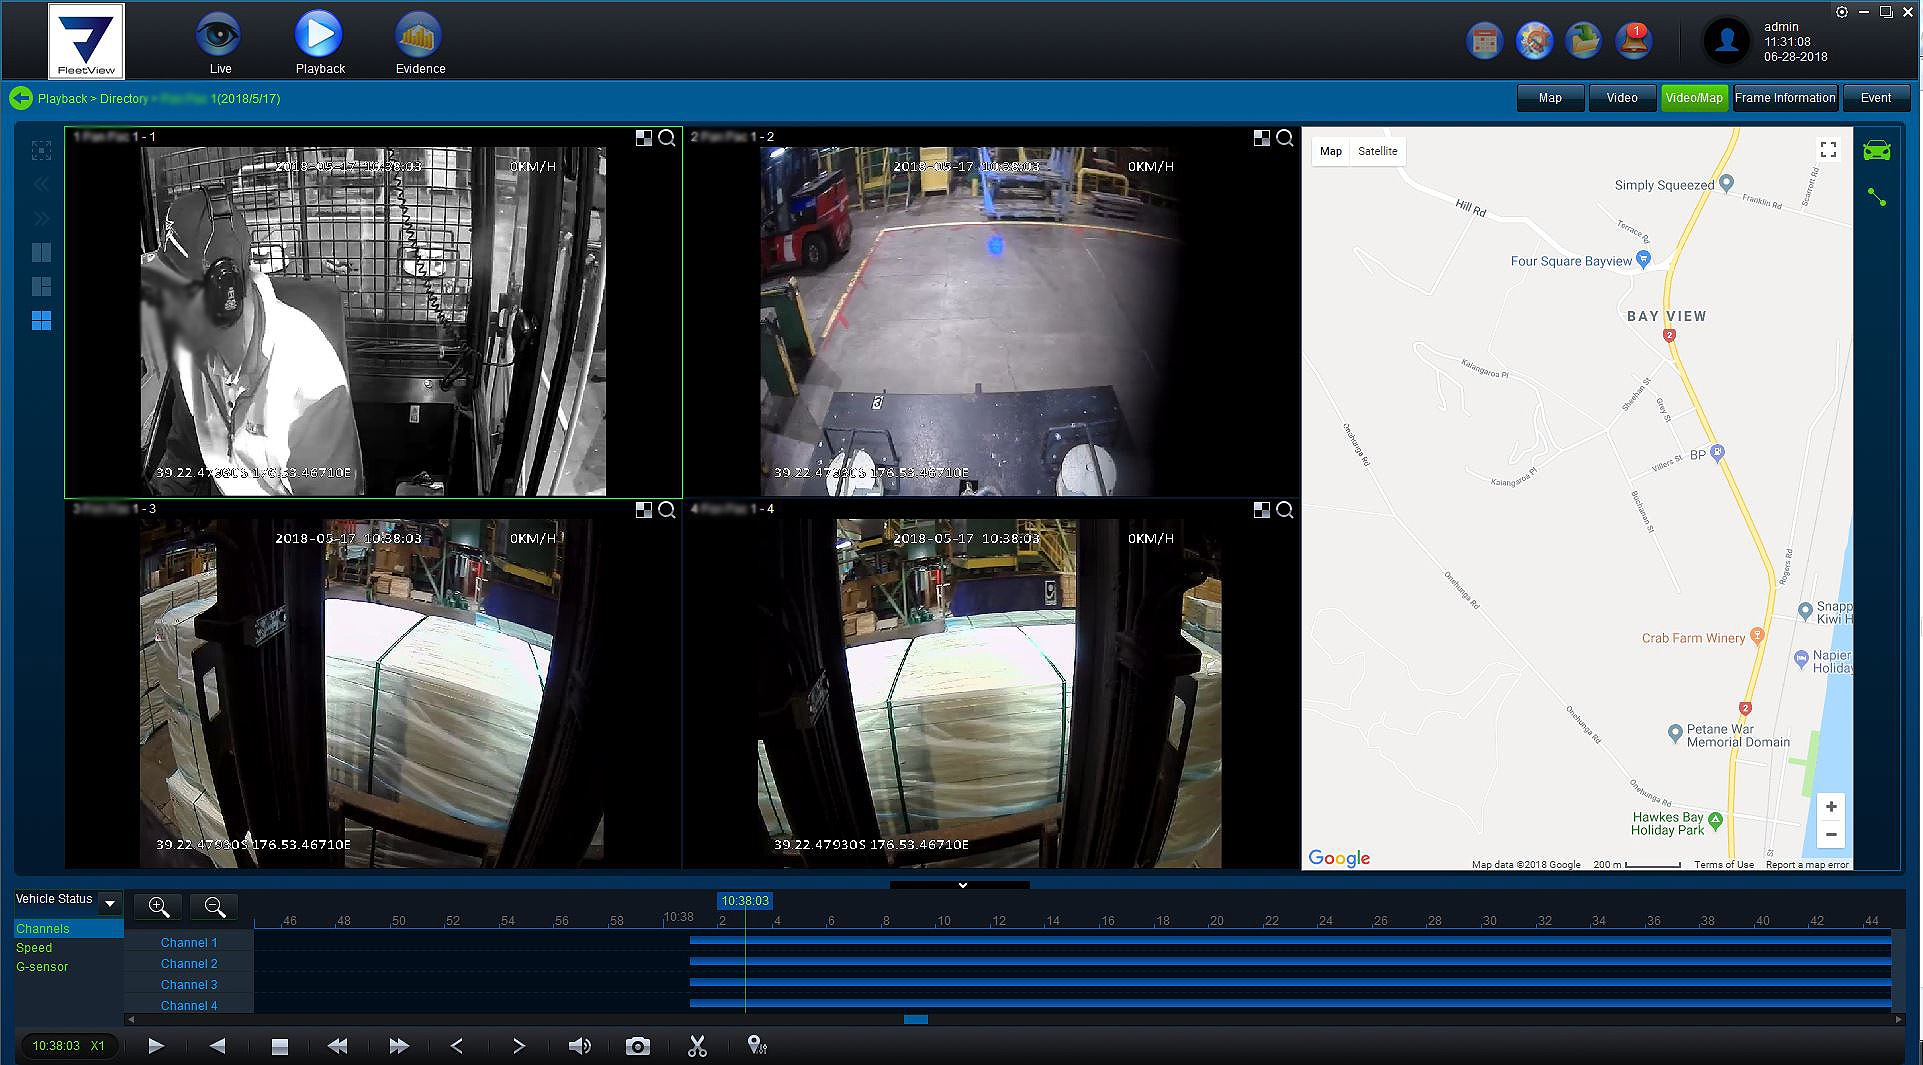 Viewtech Fleetview Forklift camera system